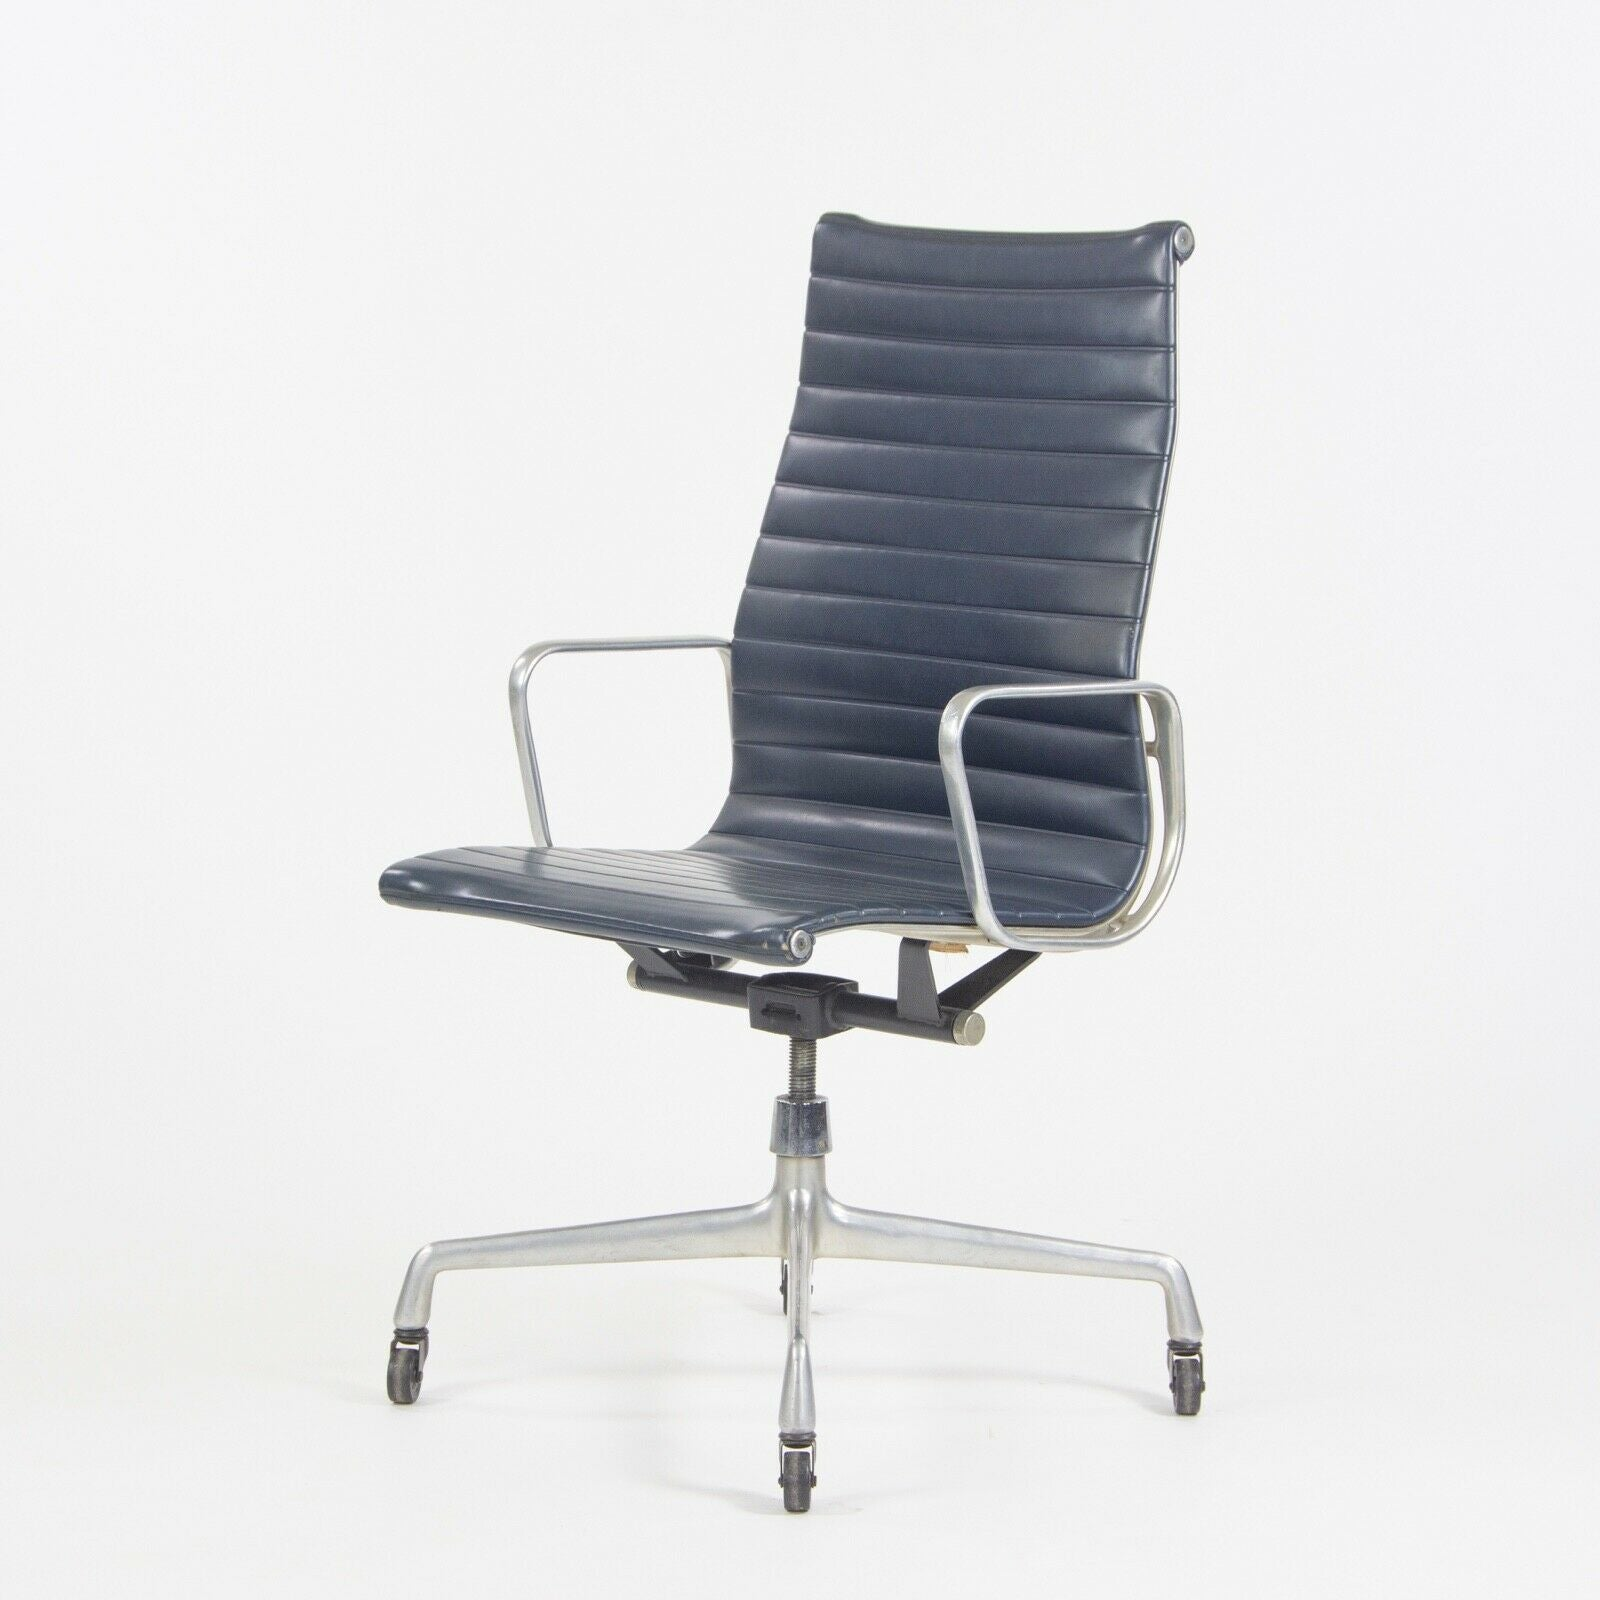 SOLD 1970s Navy Blue Eames Herman Miller Tall Aluminum Group Executive Desk Chair